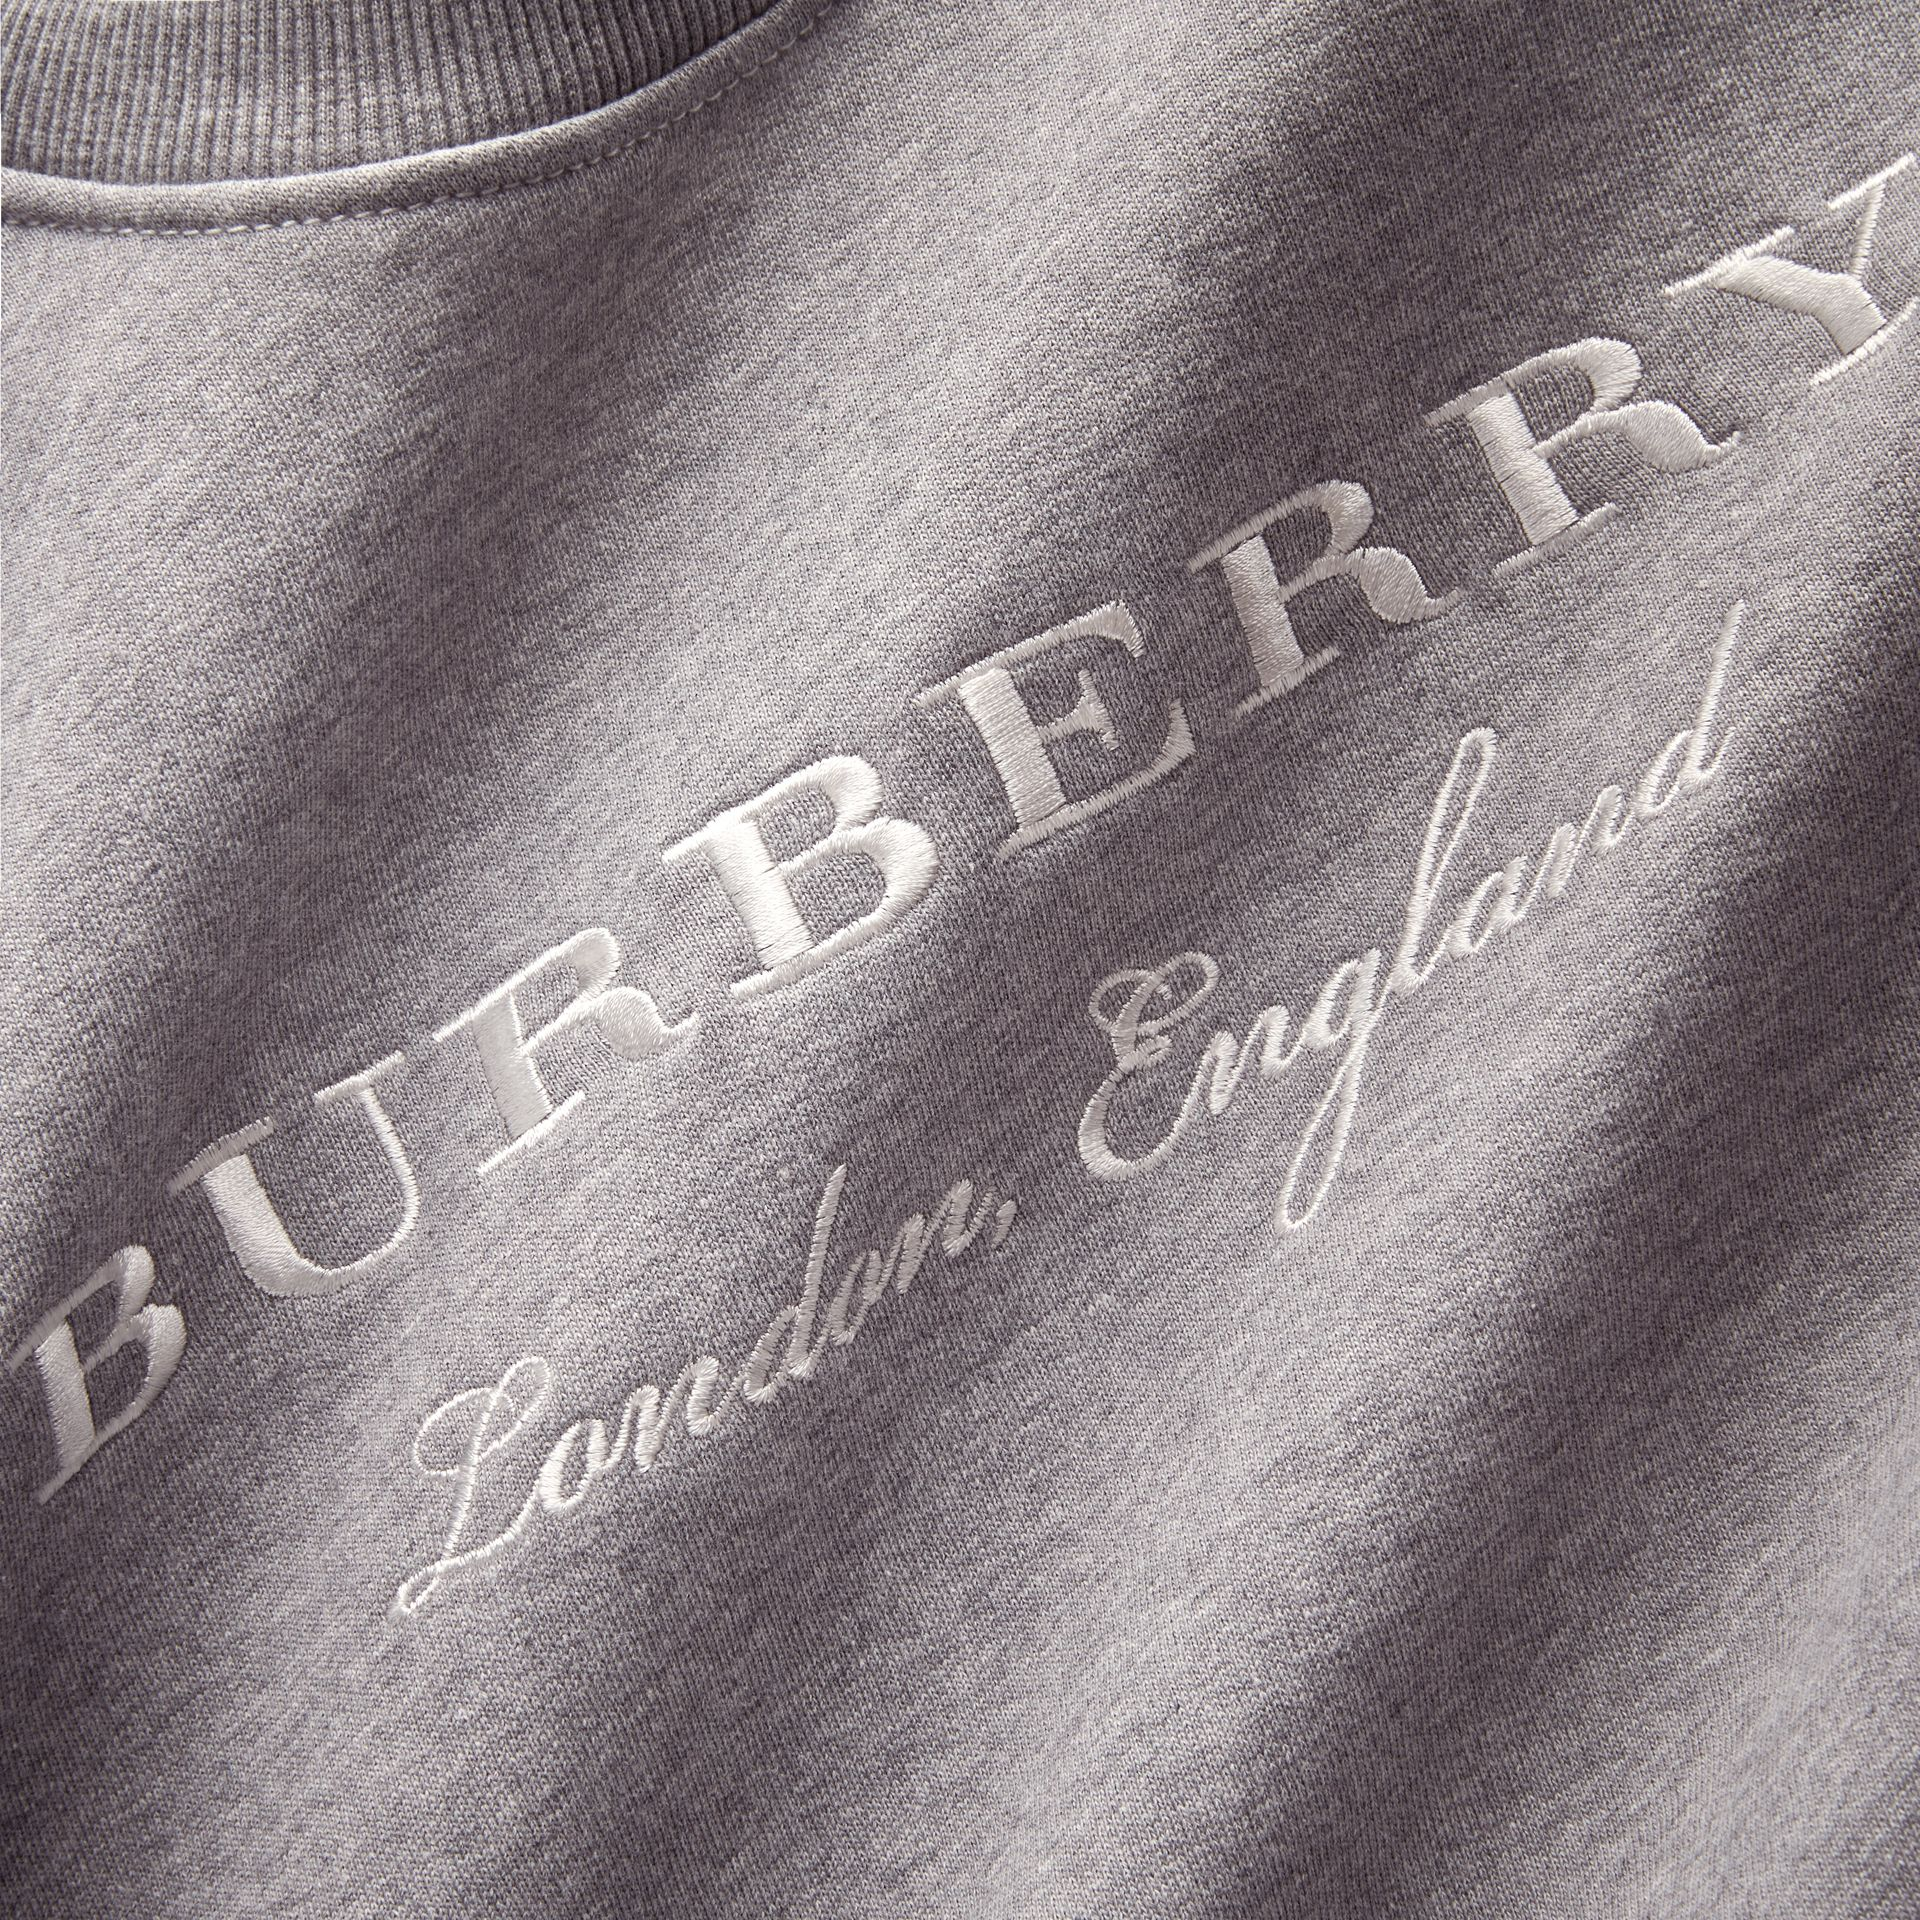 Embroidered Cotton Blend Jersey Sweatshirt in Pale Grey Melange - Women | Burberry - gallery image 2